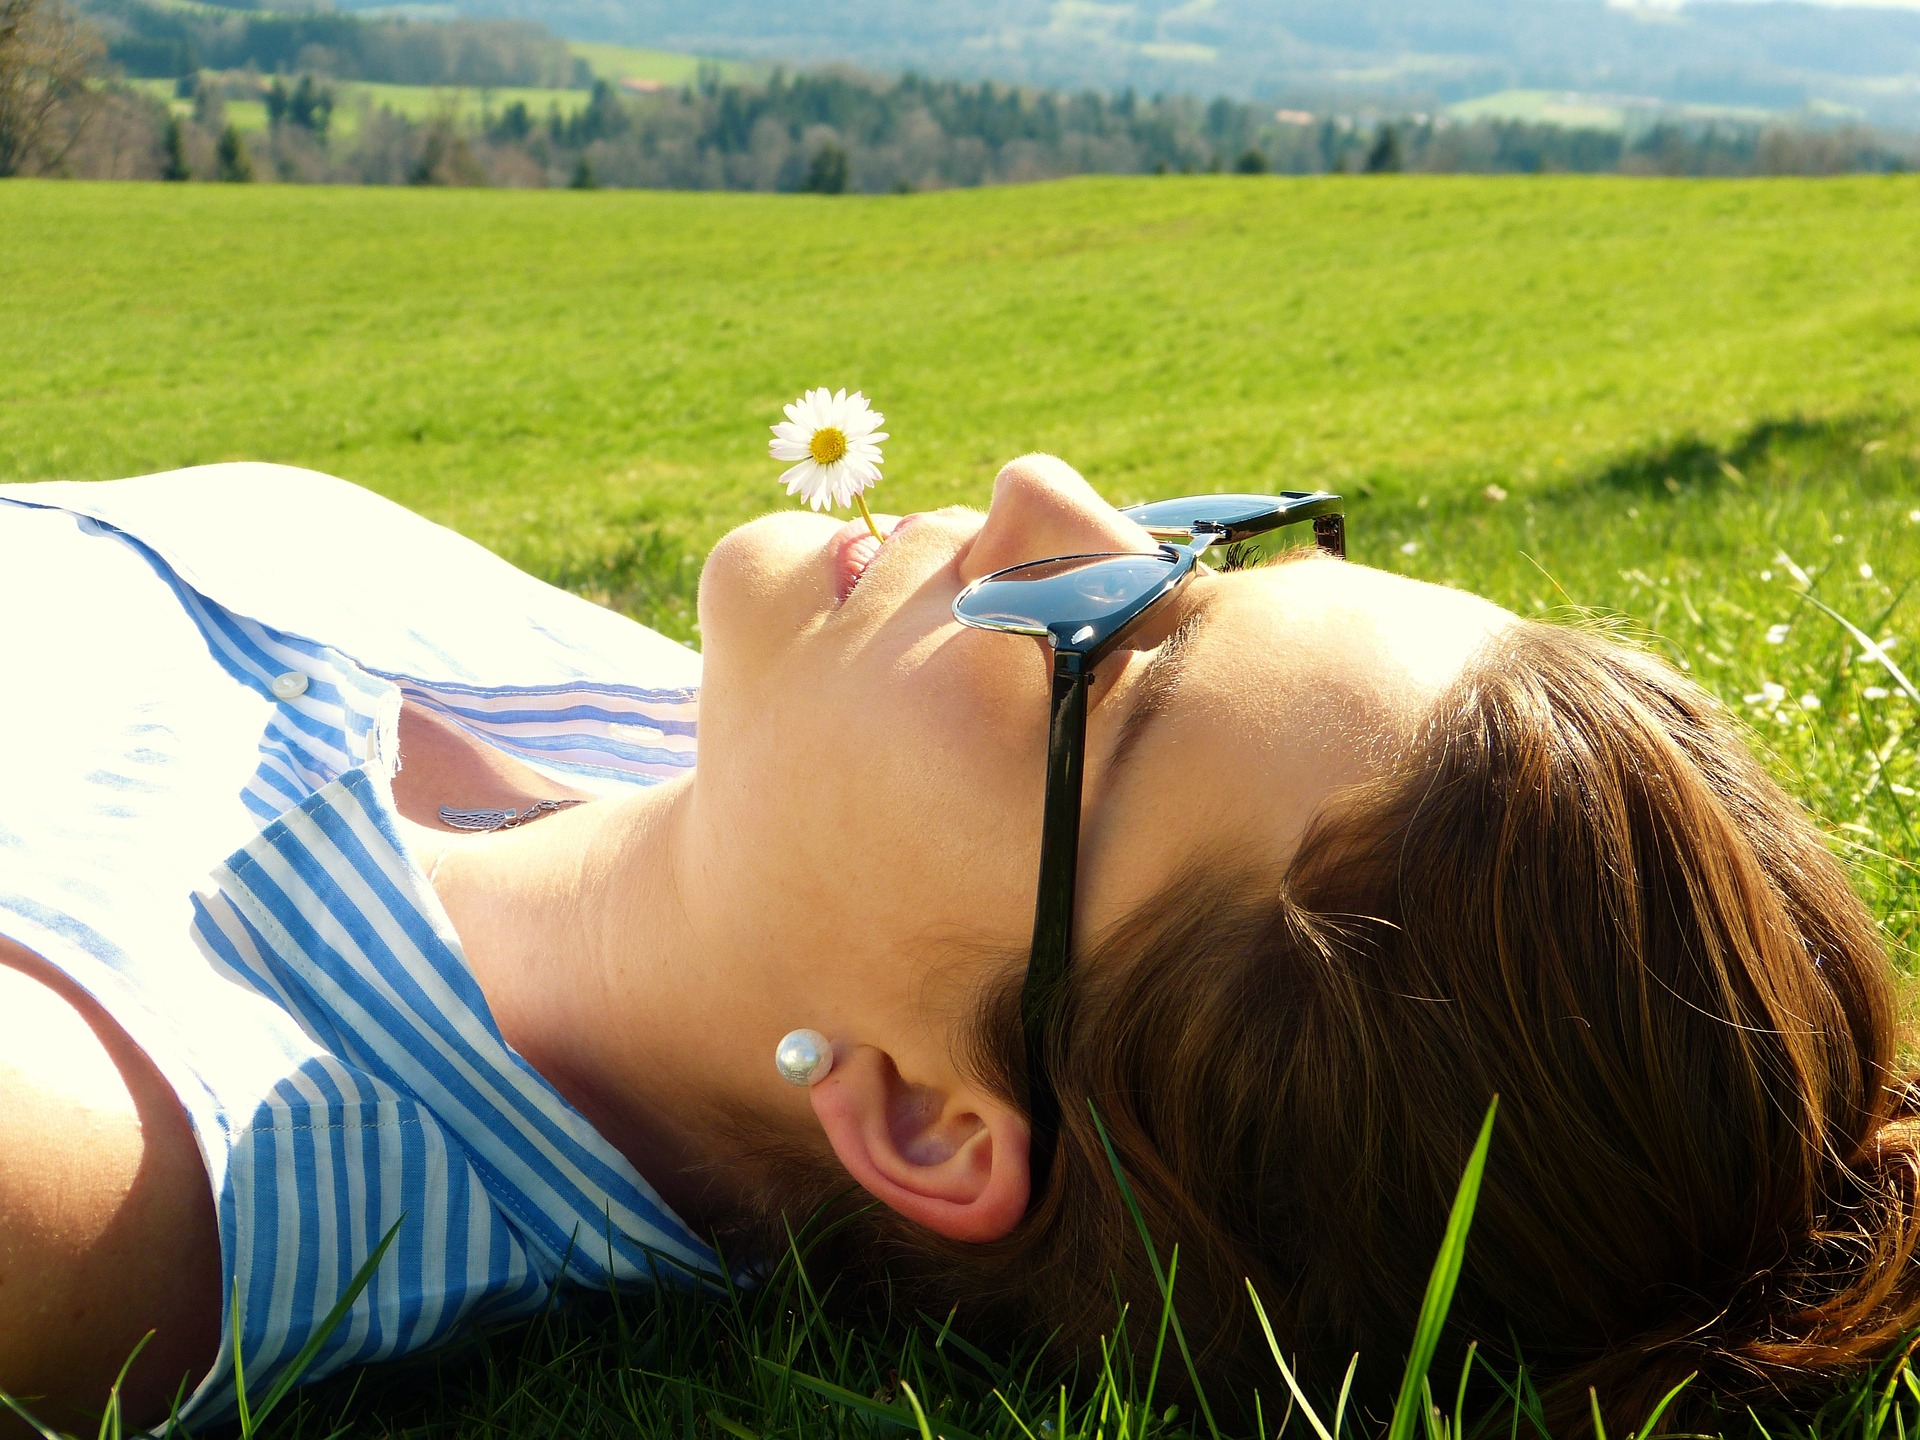 Woman laying in field with sunglasses on and flower in mouth